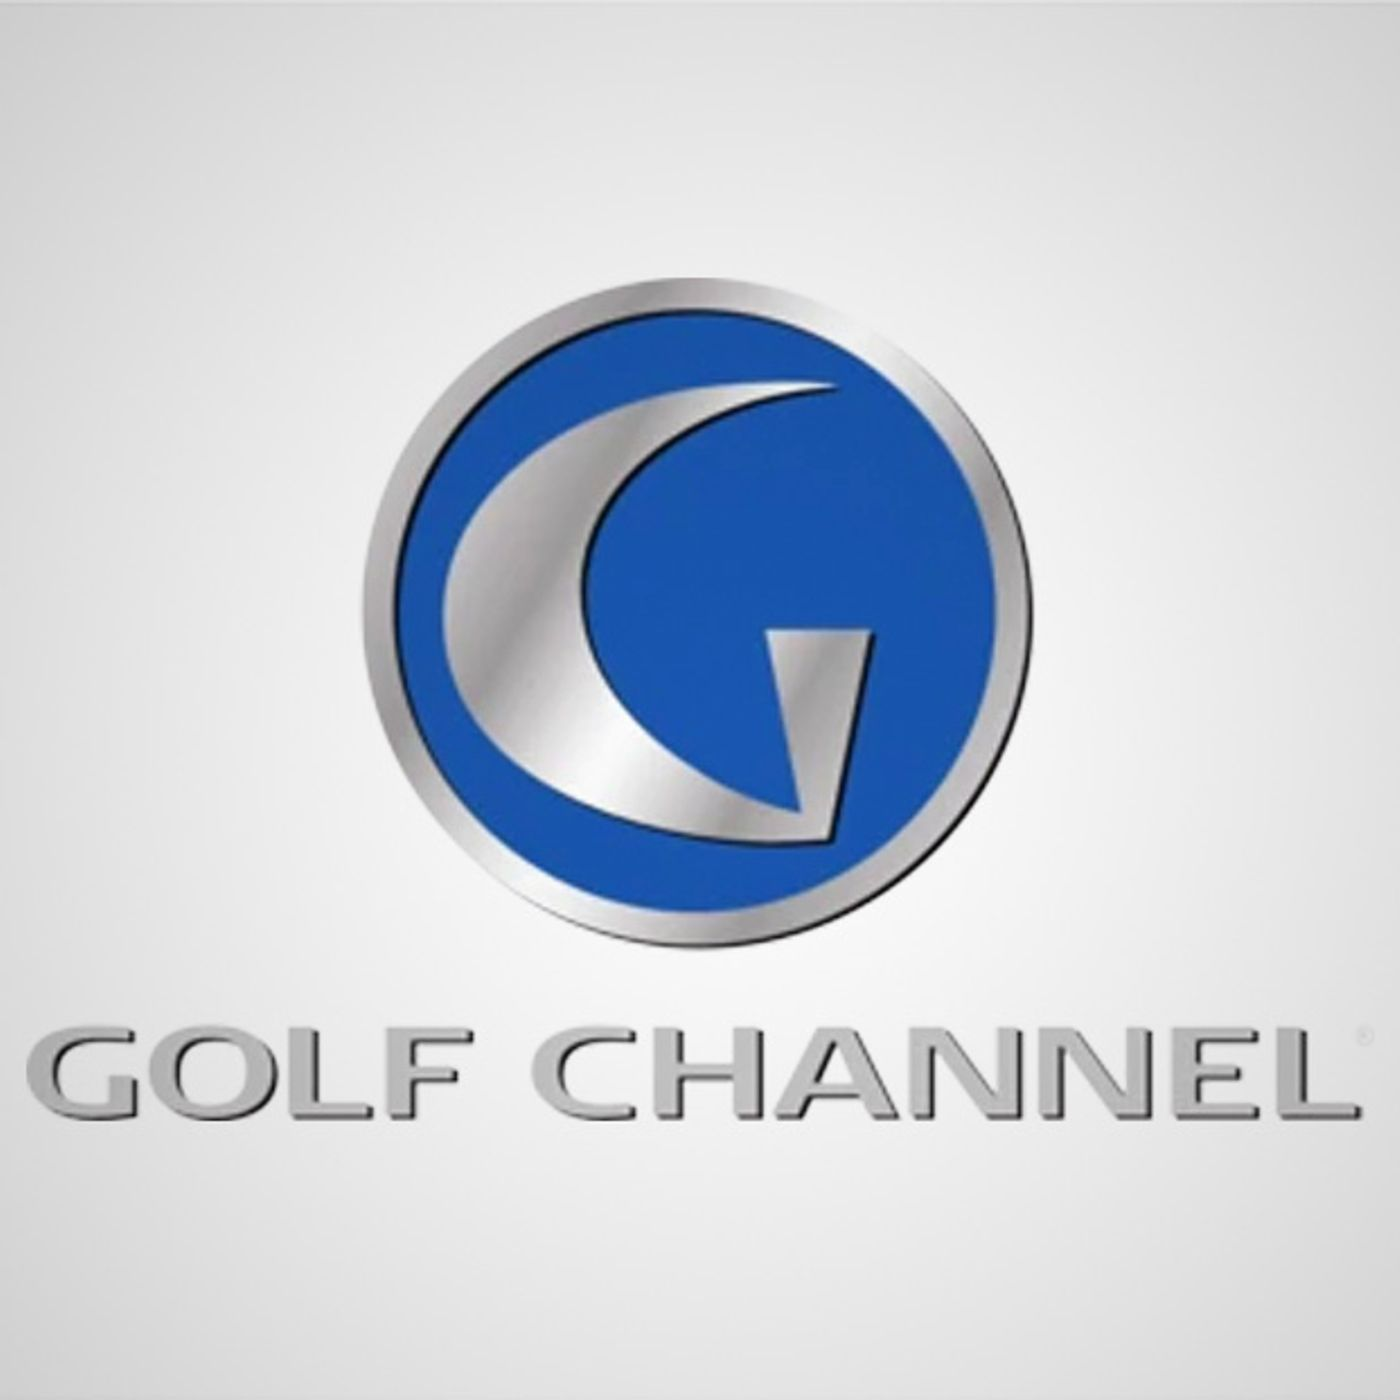 Michael Whalen: The Man Who Built The Golf Channel